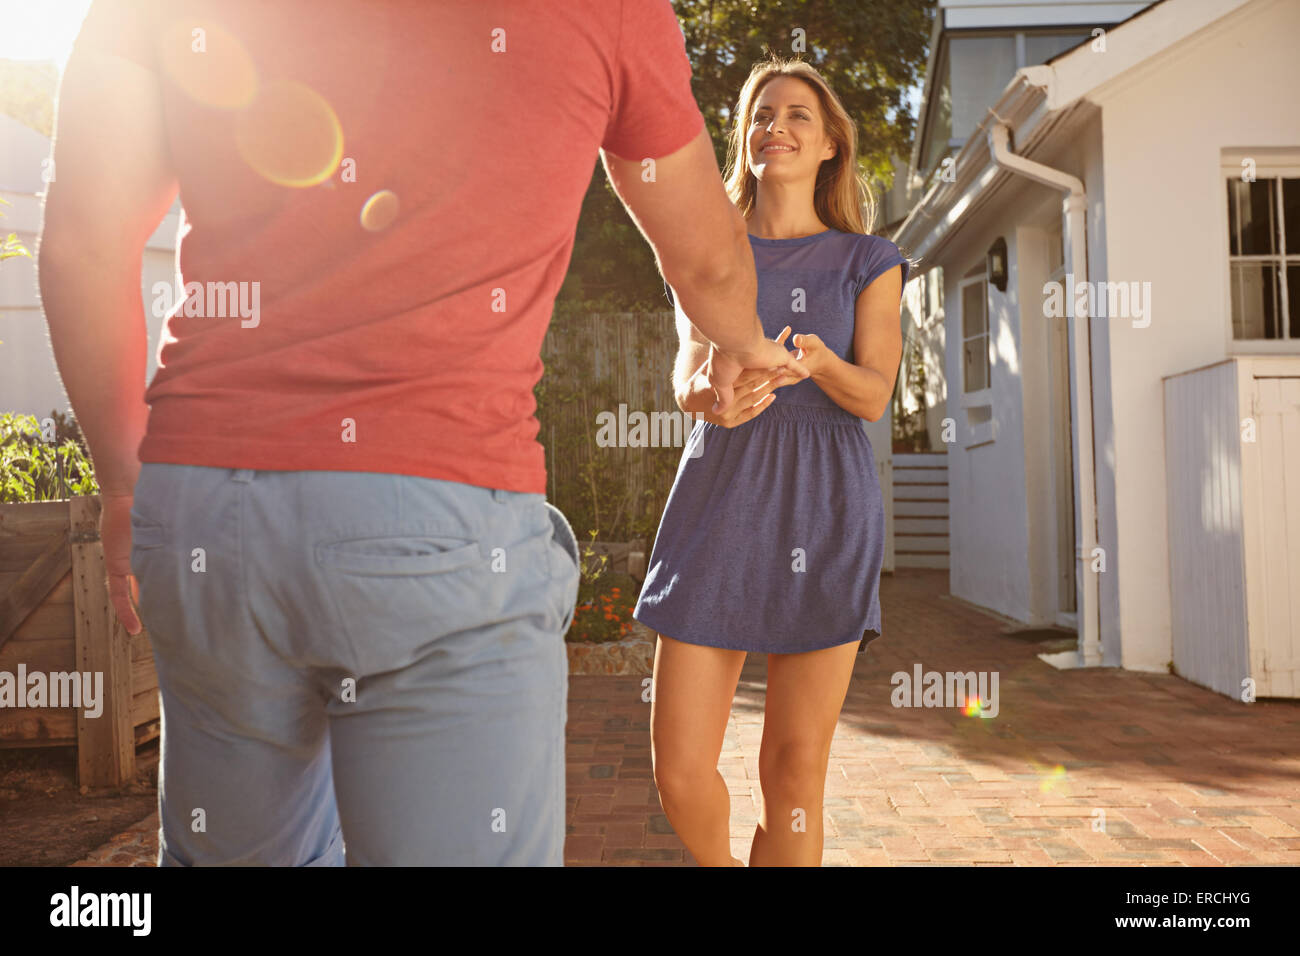 Couple outside their home with young woman pulling her boyfriend. Young woman holding hand of her boyfriend while - Stock Image